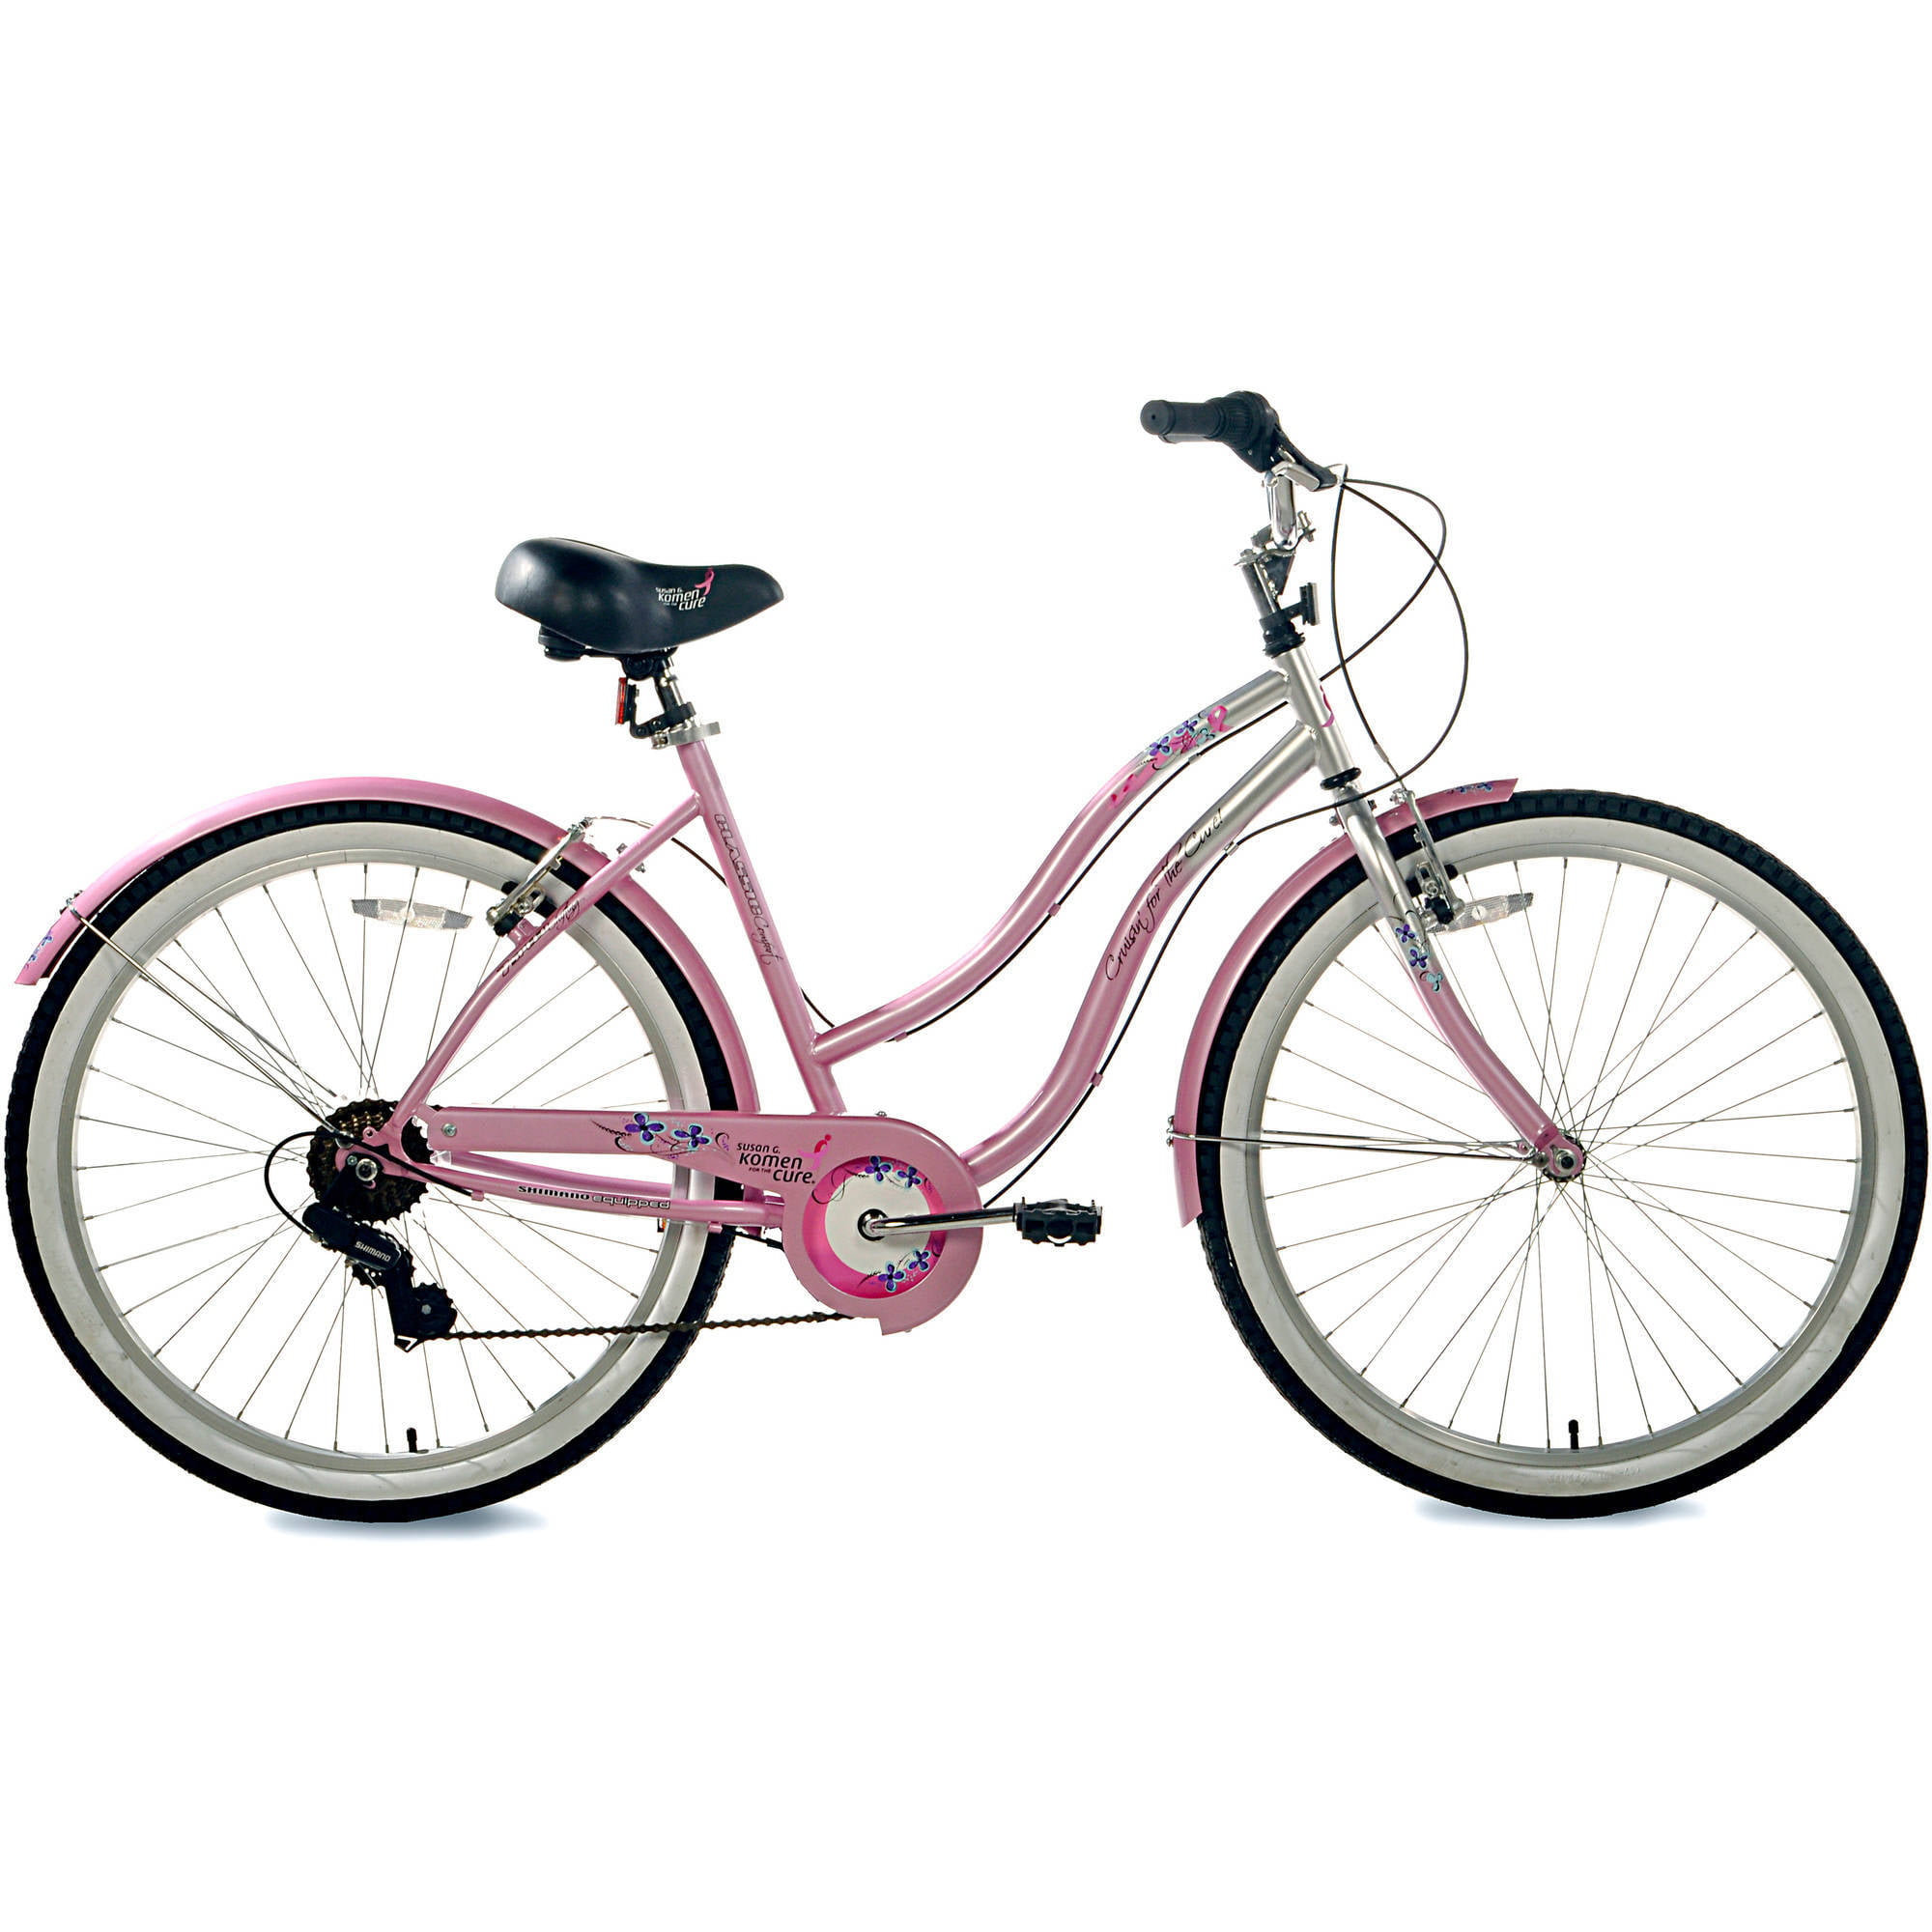 Susan G Komen 26 Womens Multi Speed Cruiser Bike Pink